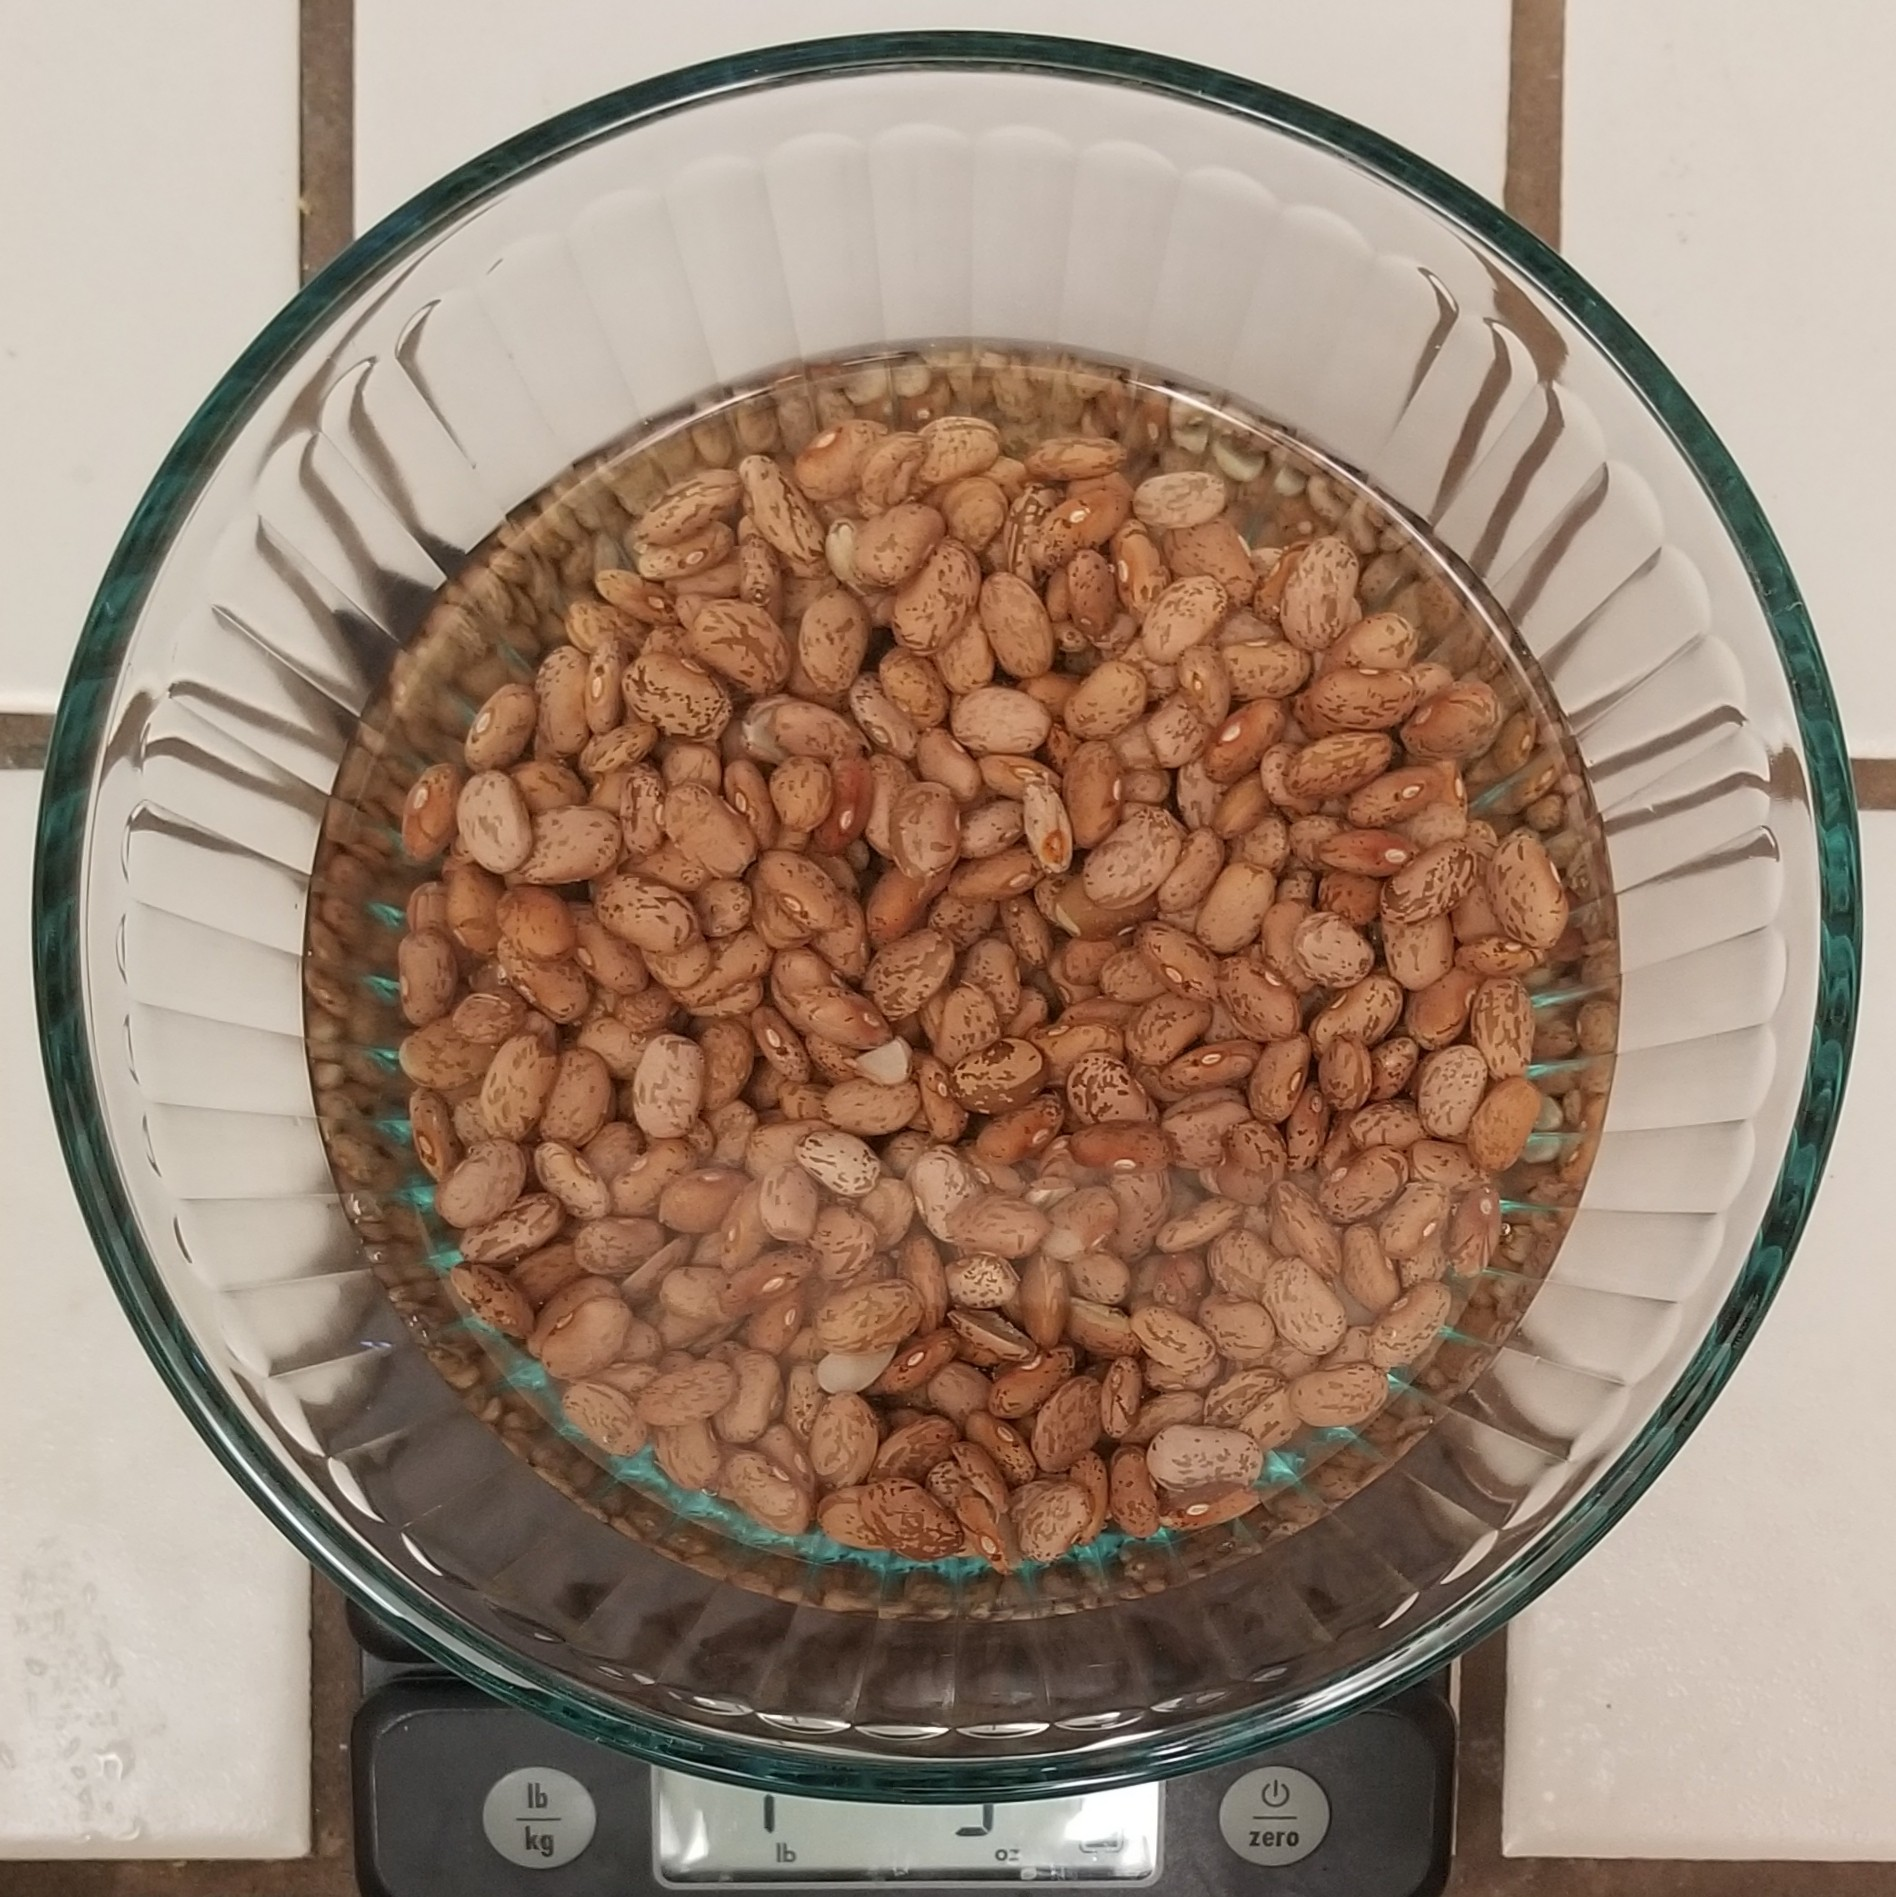 Pinto beans in water.